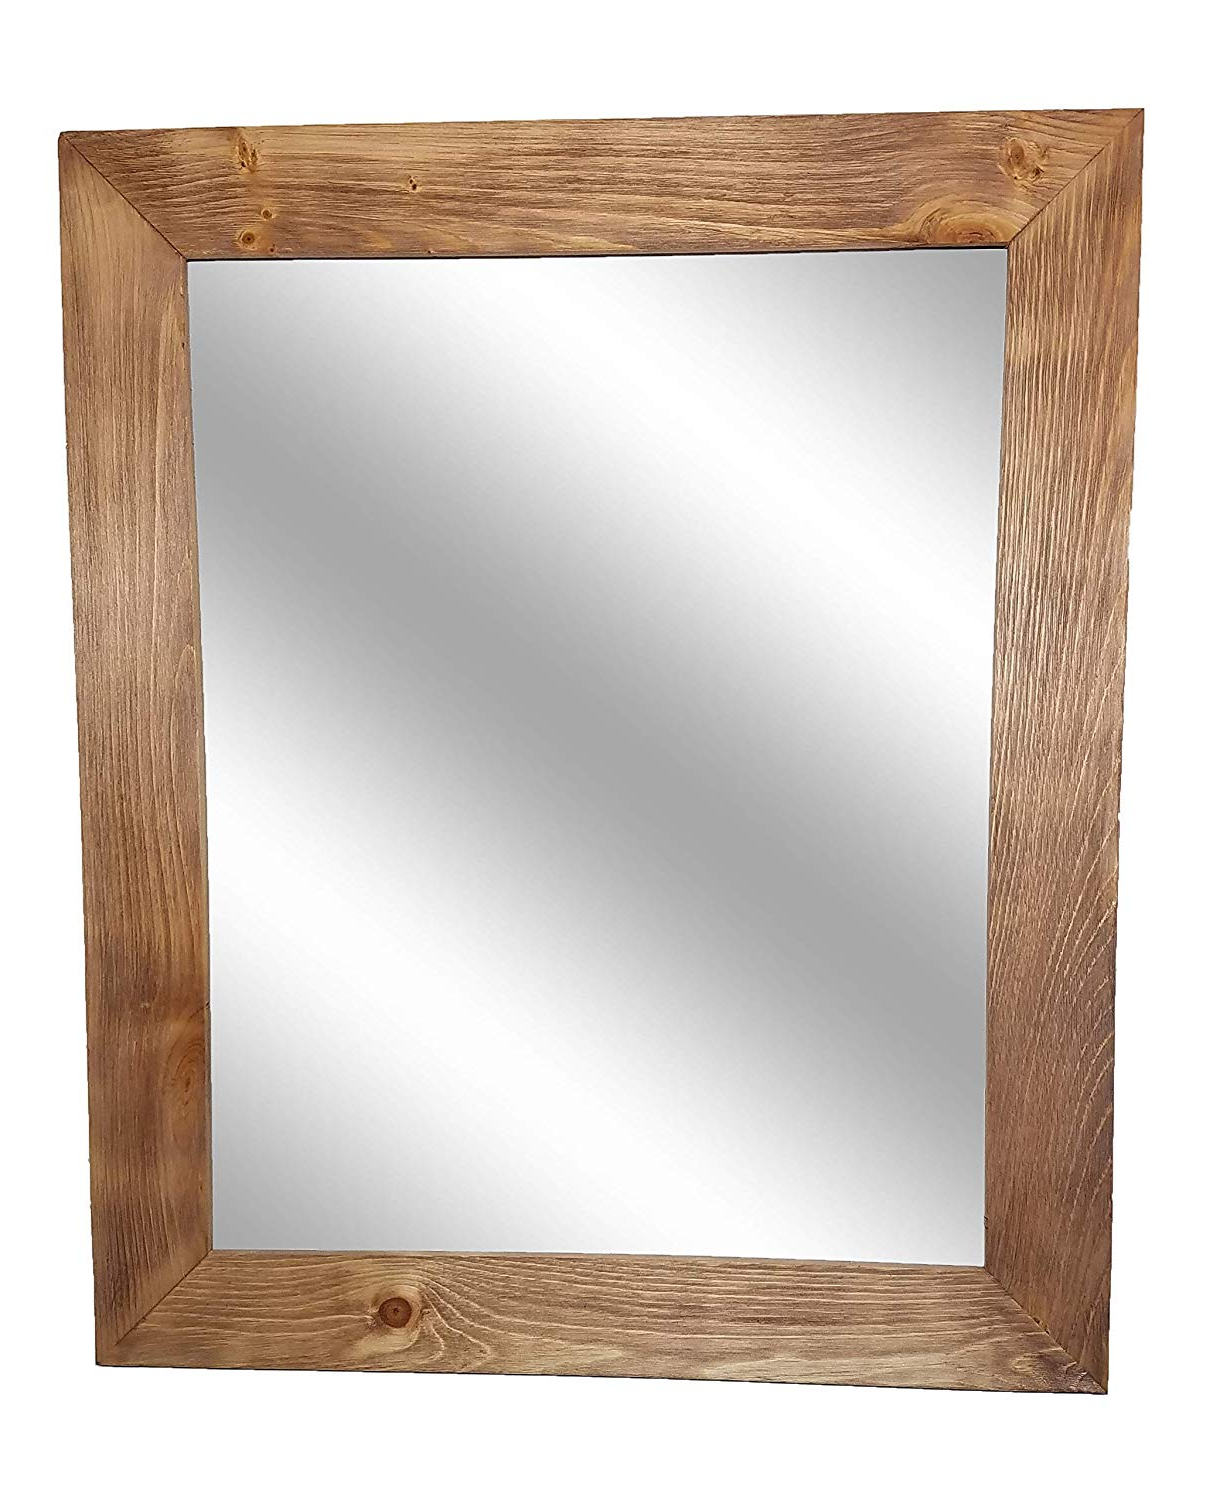 Amazon: Shiplap Large Wood Framed Mirror Available In 4 Sizes Intended For Most Recent Cherry Wood Framed Wall Mirrors (View 14 of 20)